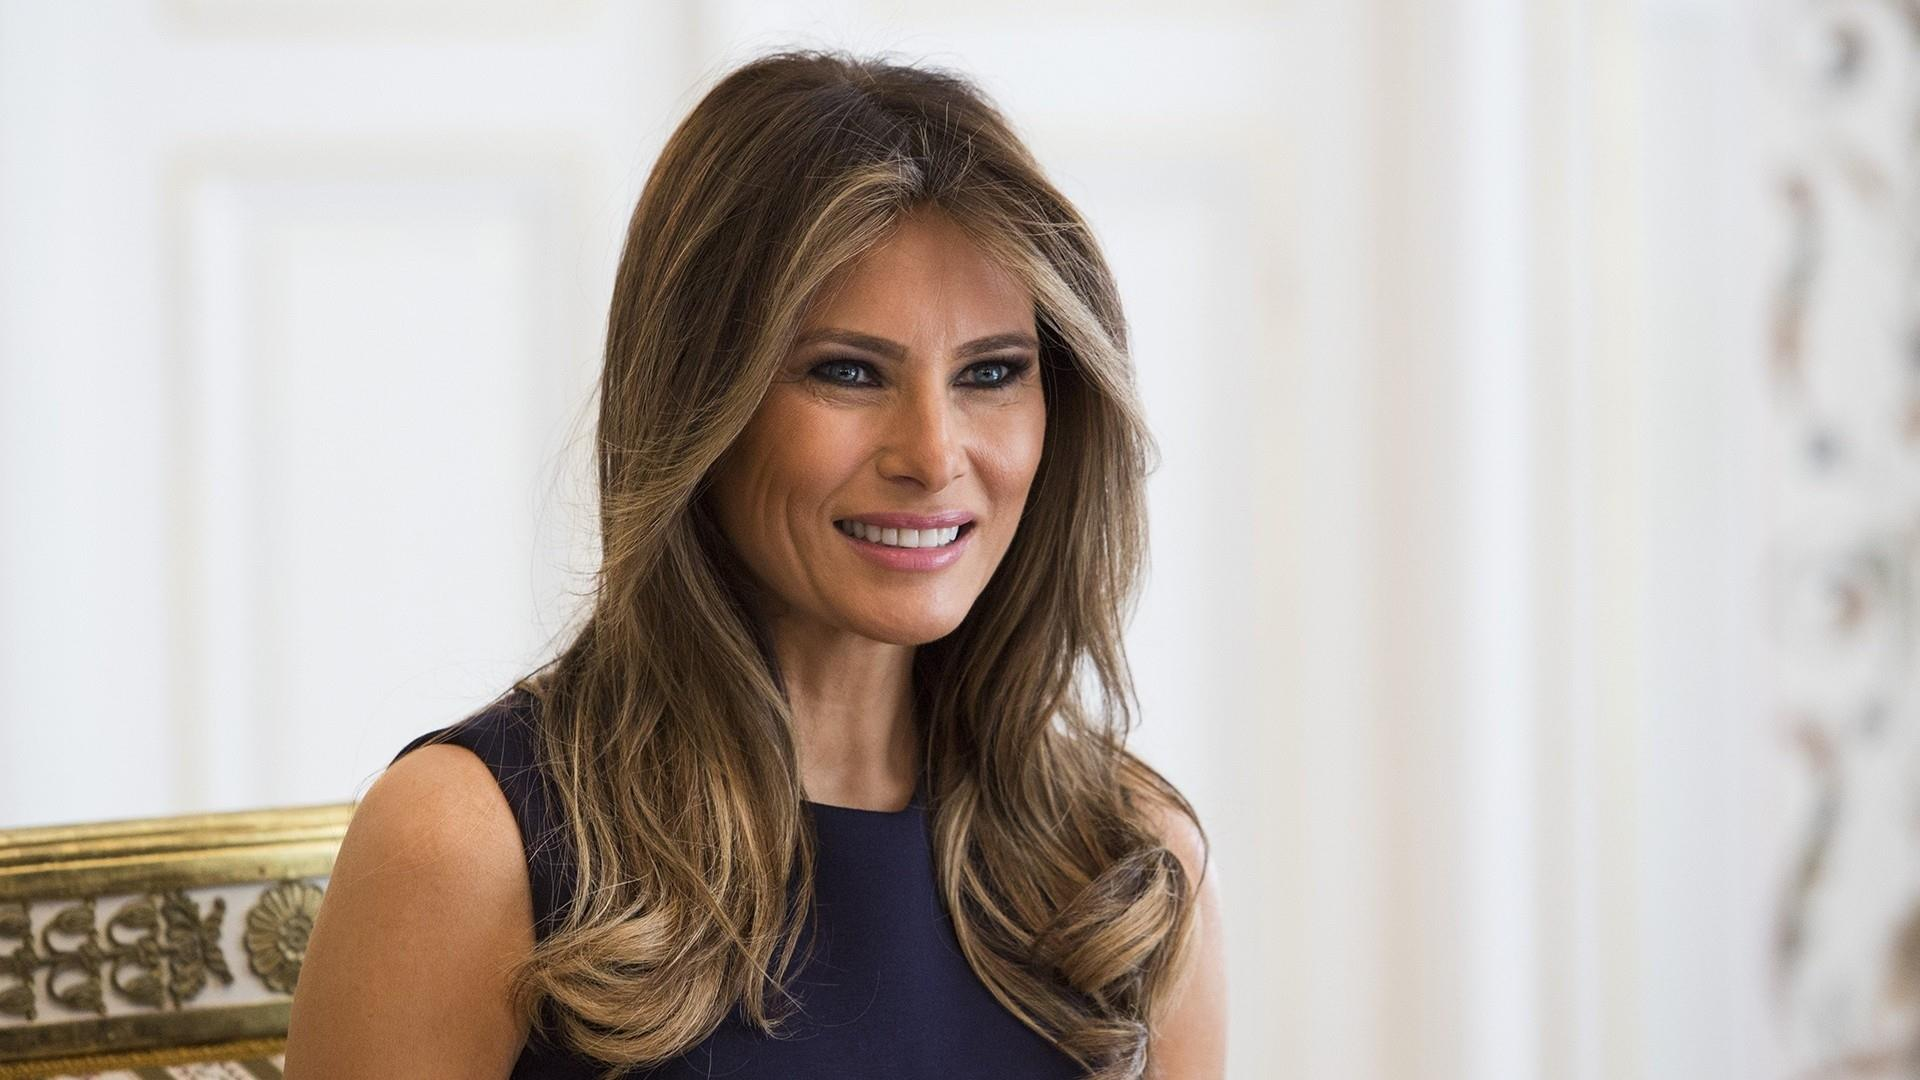 First Lady's plane lands safely after experiencing 'mechanical issue'